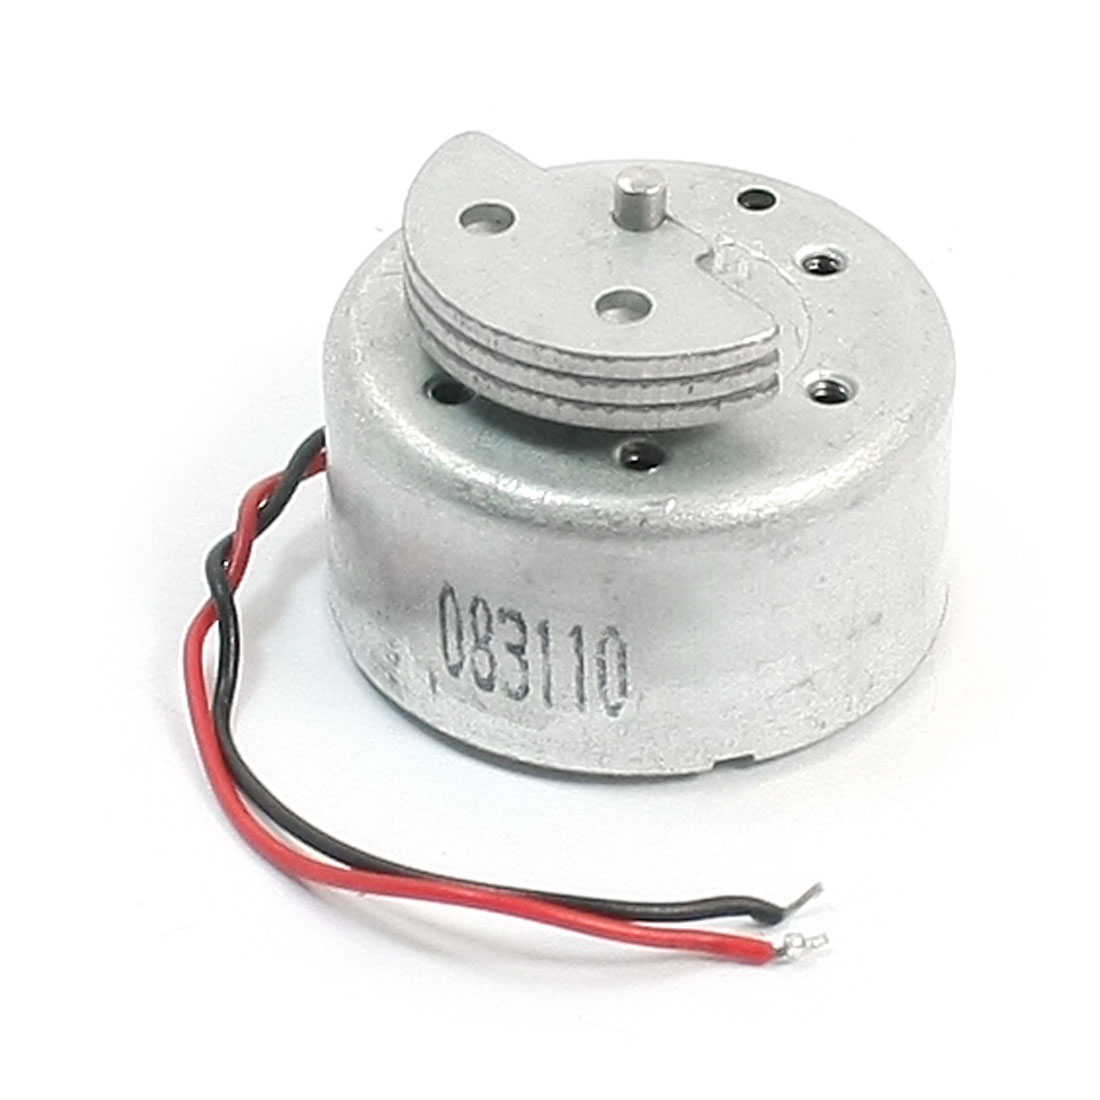 3-6V 3000RPM High Torque Electric Tool Spare Parts DC Vibration Motor